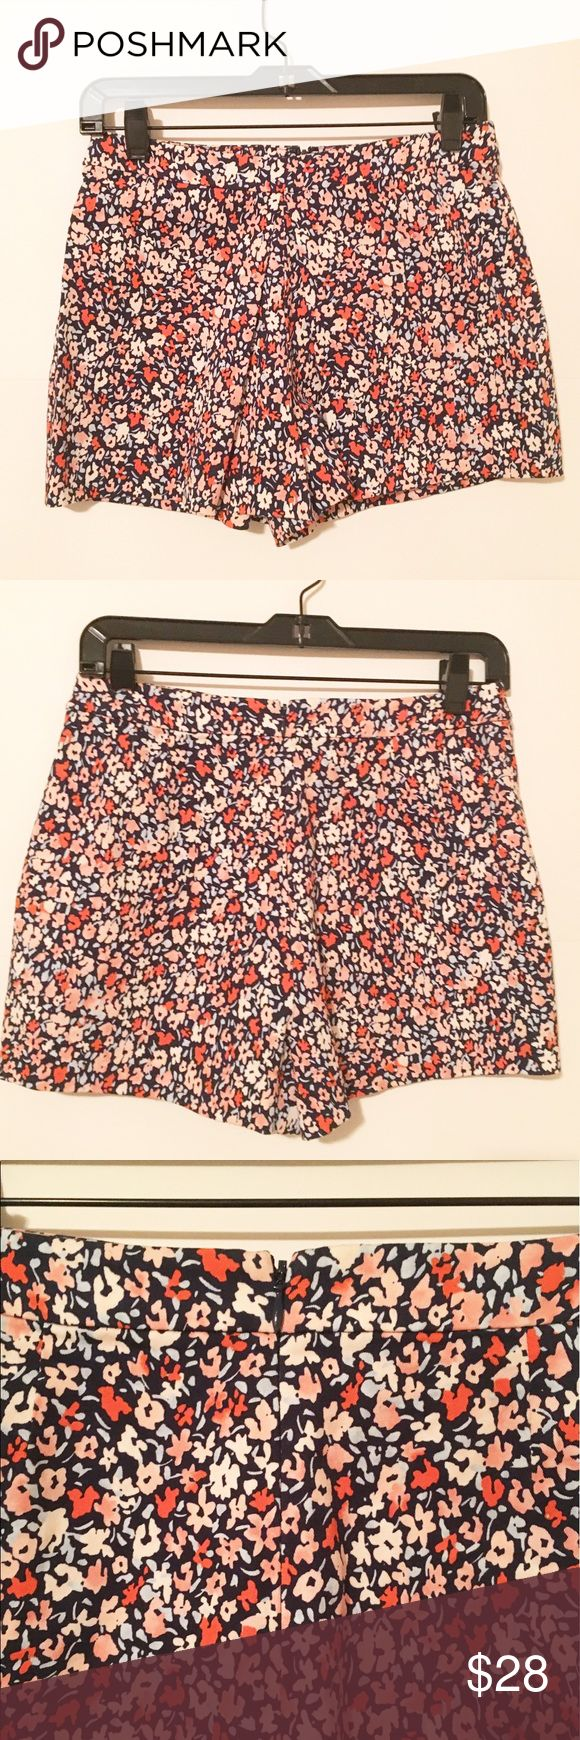 BCBG High Waist Floral Shorts 🌷 These are so darn cute and perfect for spring! High waist fit and zip up in the back, these are in brand new condition/have no signs of wear. 99% cotton, I love these shorts because you can pair them with almost any top! Bundle and save 20% ♥ BCBGeneration Shorts